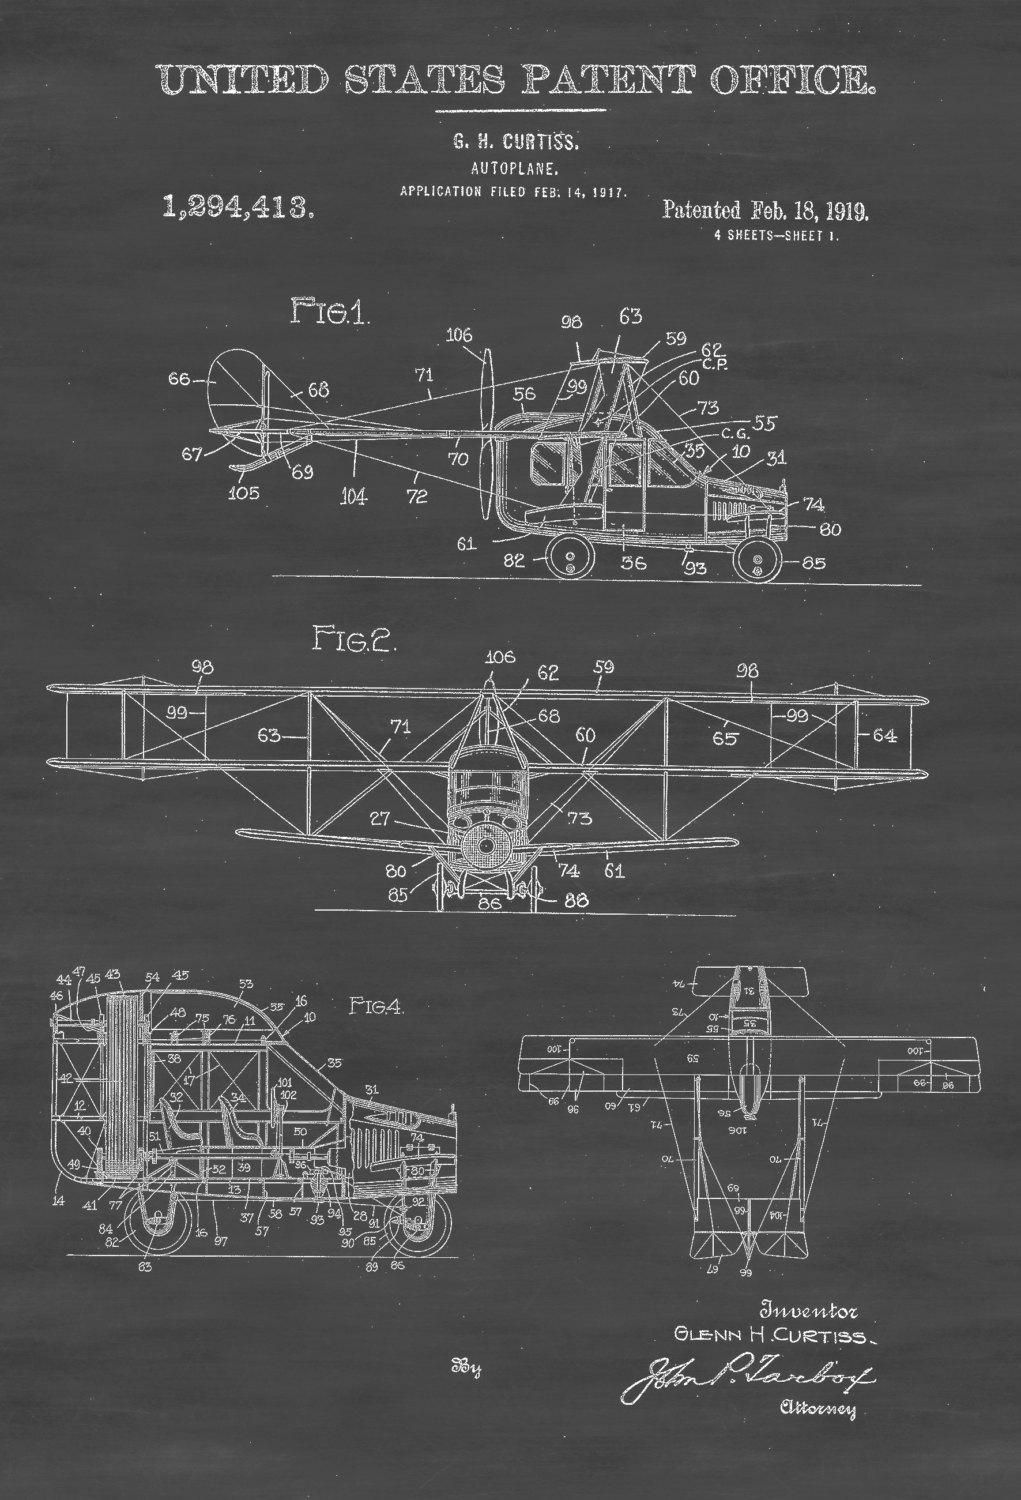 So Thats What Flying Cars Are For Flight Today Air Space Magazine Mad Max Engine Diagram The Curtiss Autoplane Was Unveiled In 1917 As A Limousine Of Built To Carry Two Passengers And Chauffeur Google Patents Us1294413